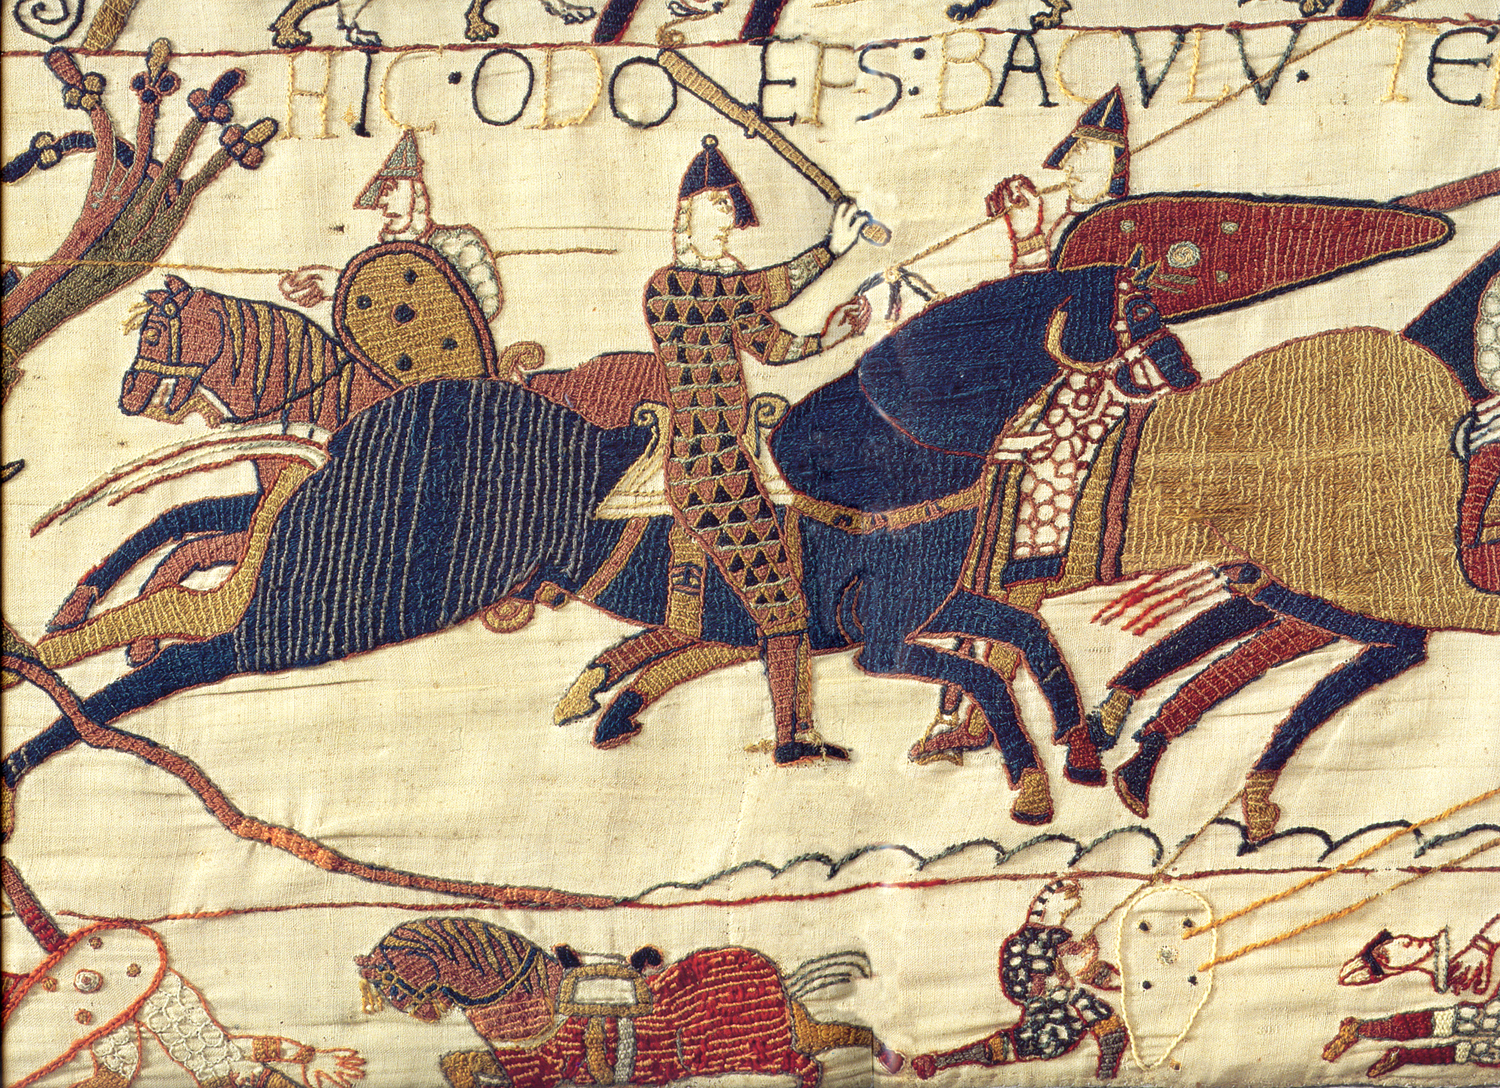 How cutting off a horse's tail was a big insult in the Middle Ages